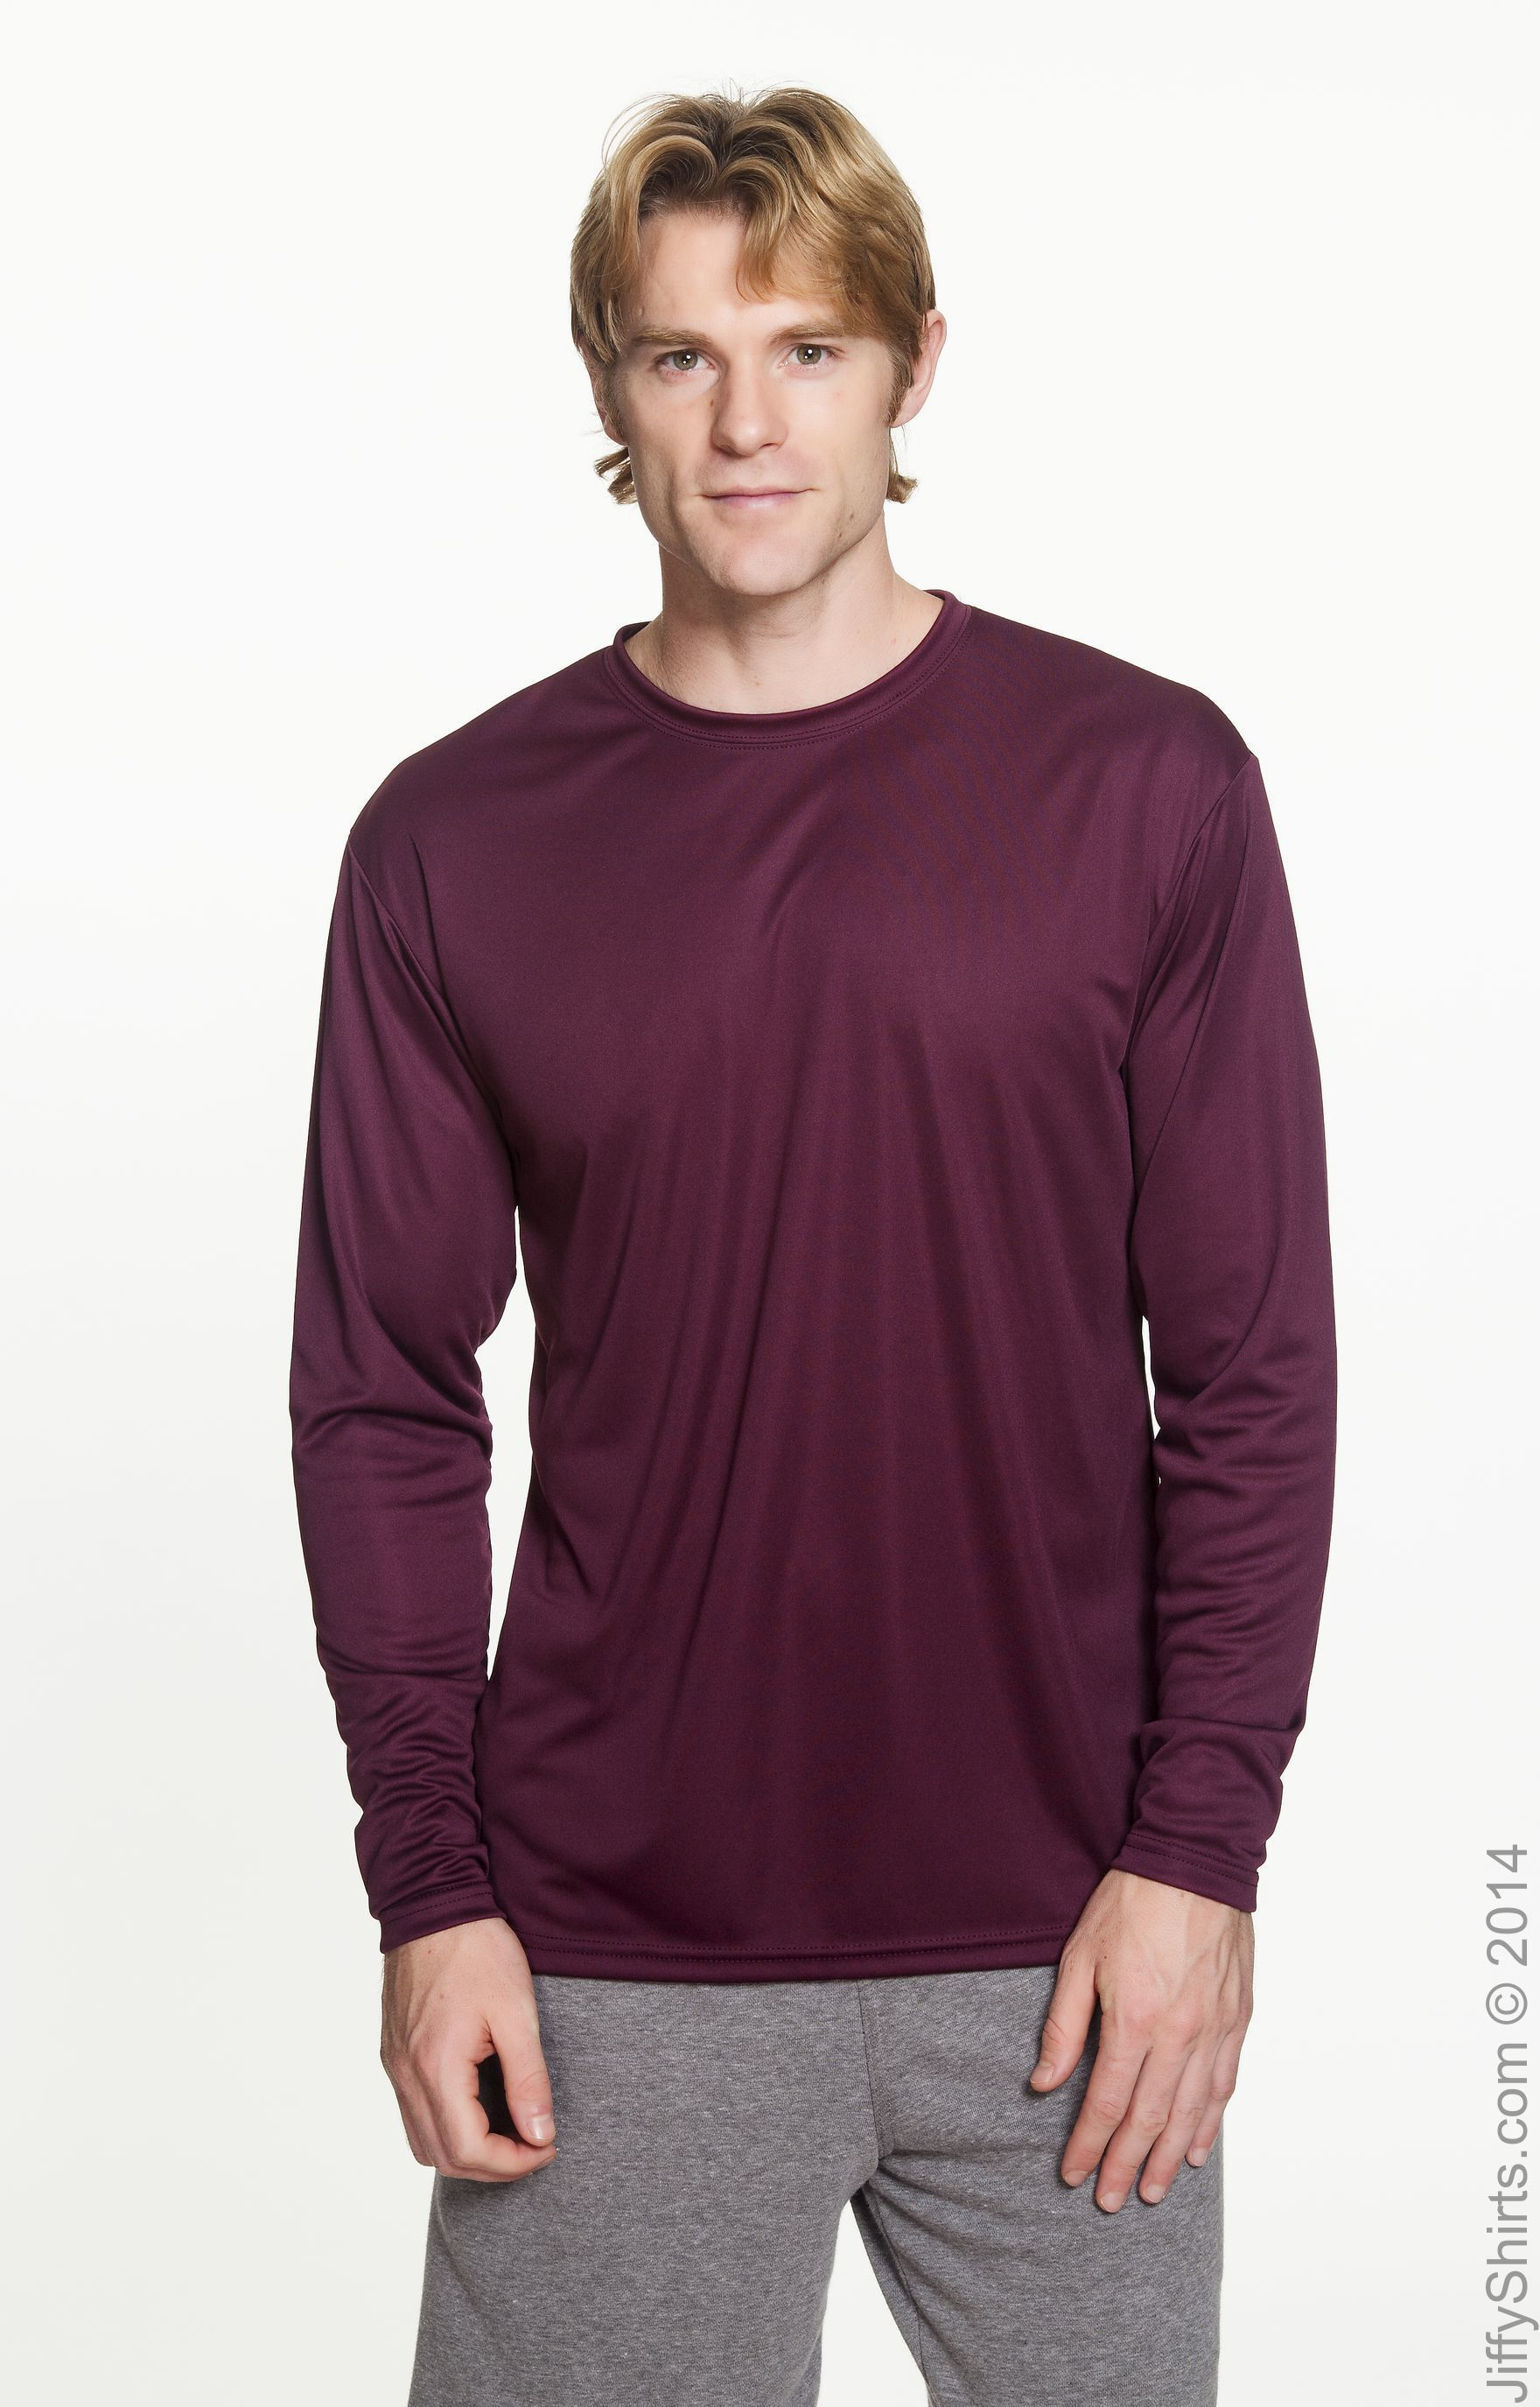 Mens T-Shirt US Polo Tee Team 3 Player Casual Long Sleeve Cotton Top Adult S-XL